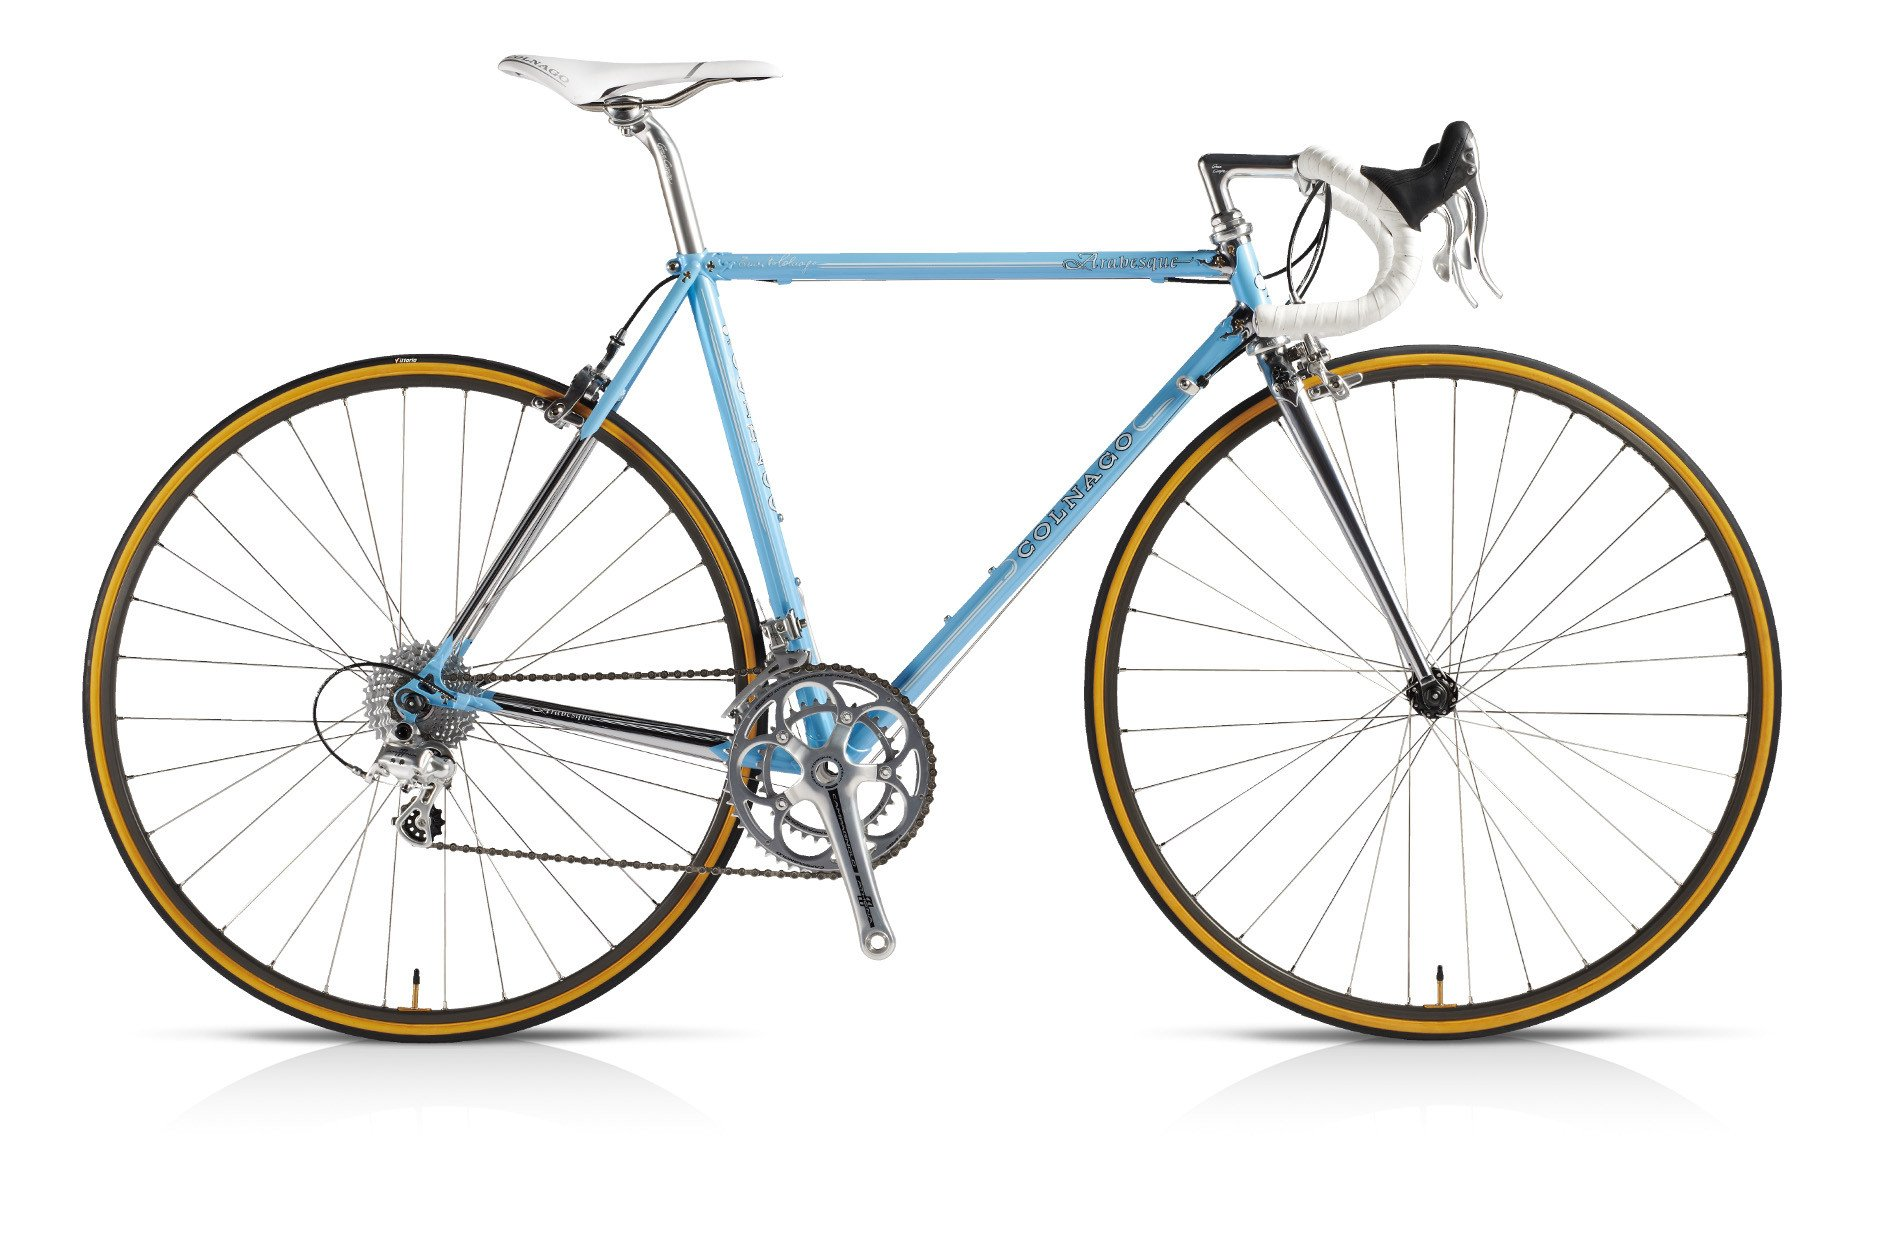 Colnago Arabesque (frame and fork only)